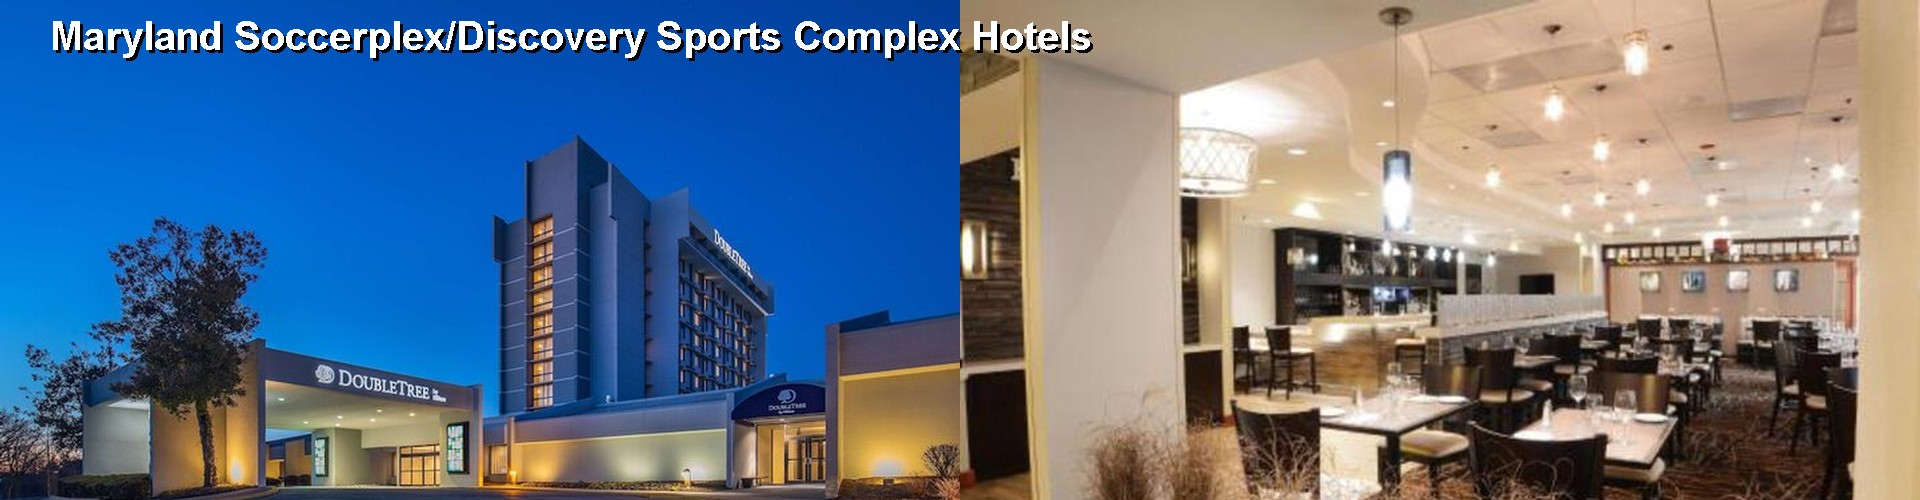 5 Best Hotels near Maryland Soccerplex/Discovery Sports Complex